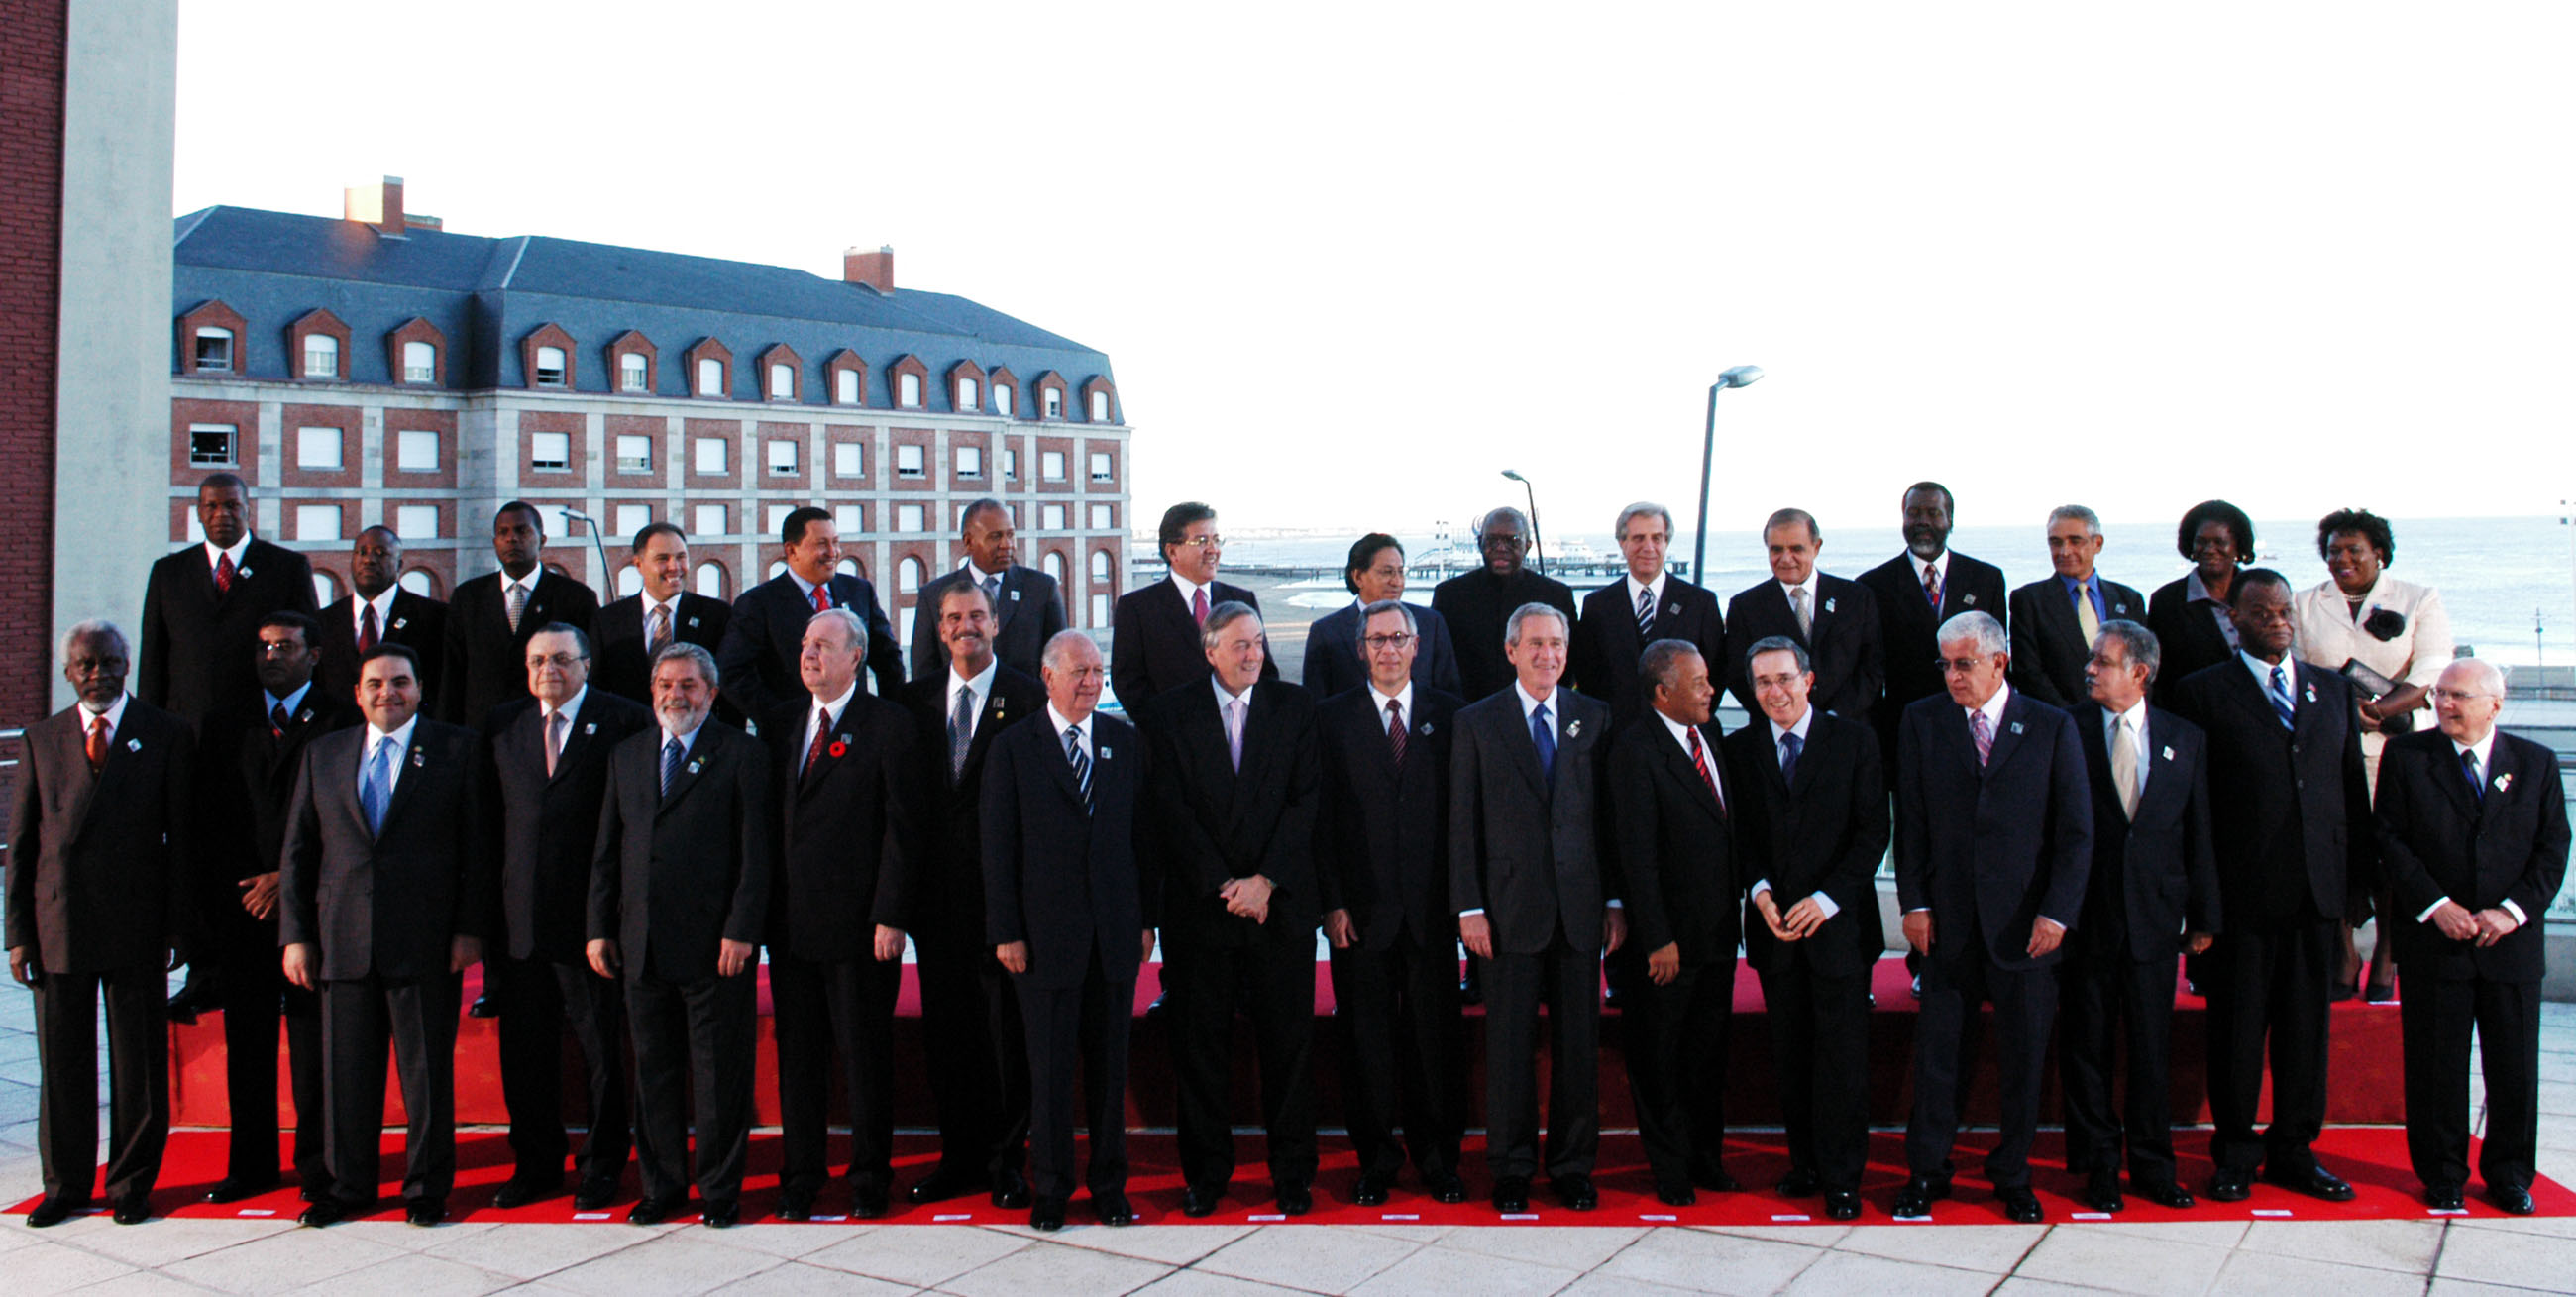 File:Head of States at the Americas Summit in Mar del Plata Argentina 2005.jpg